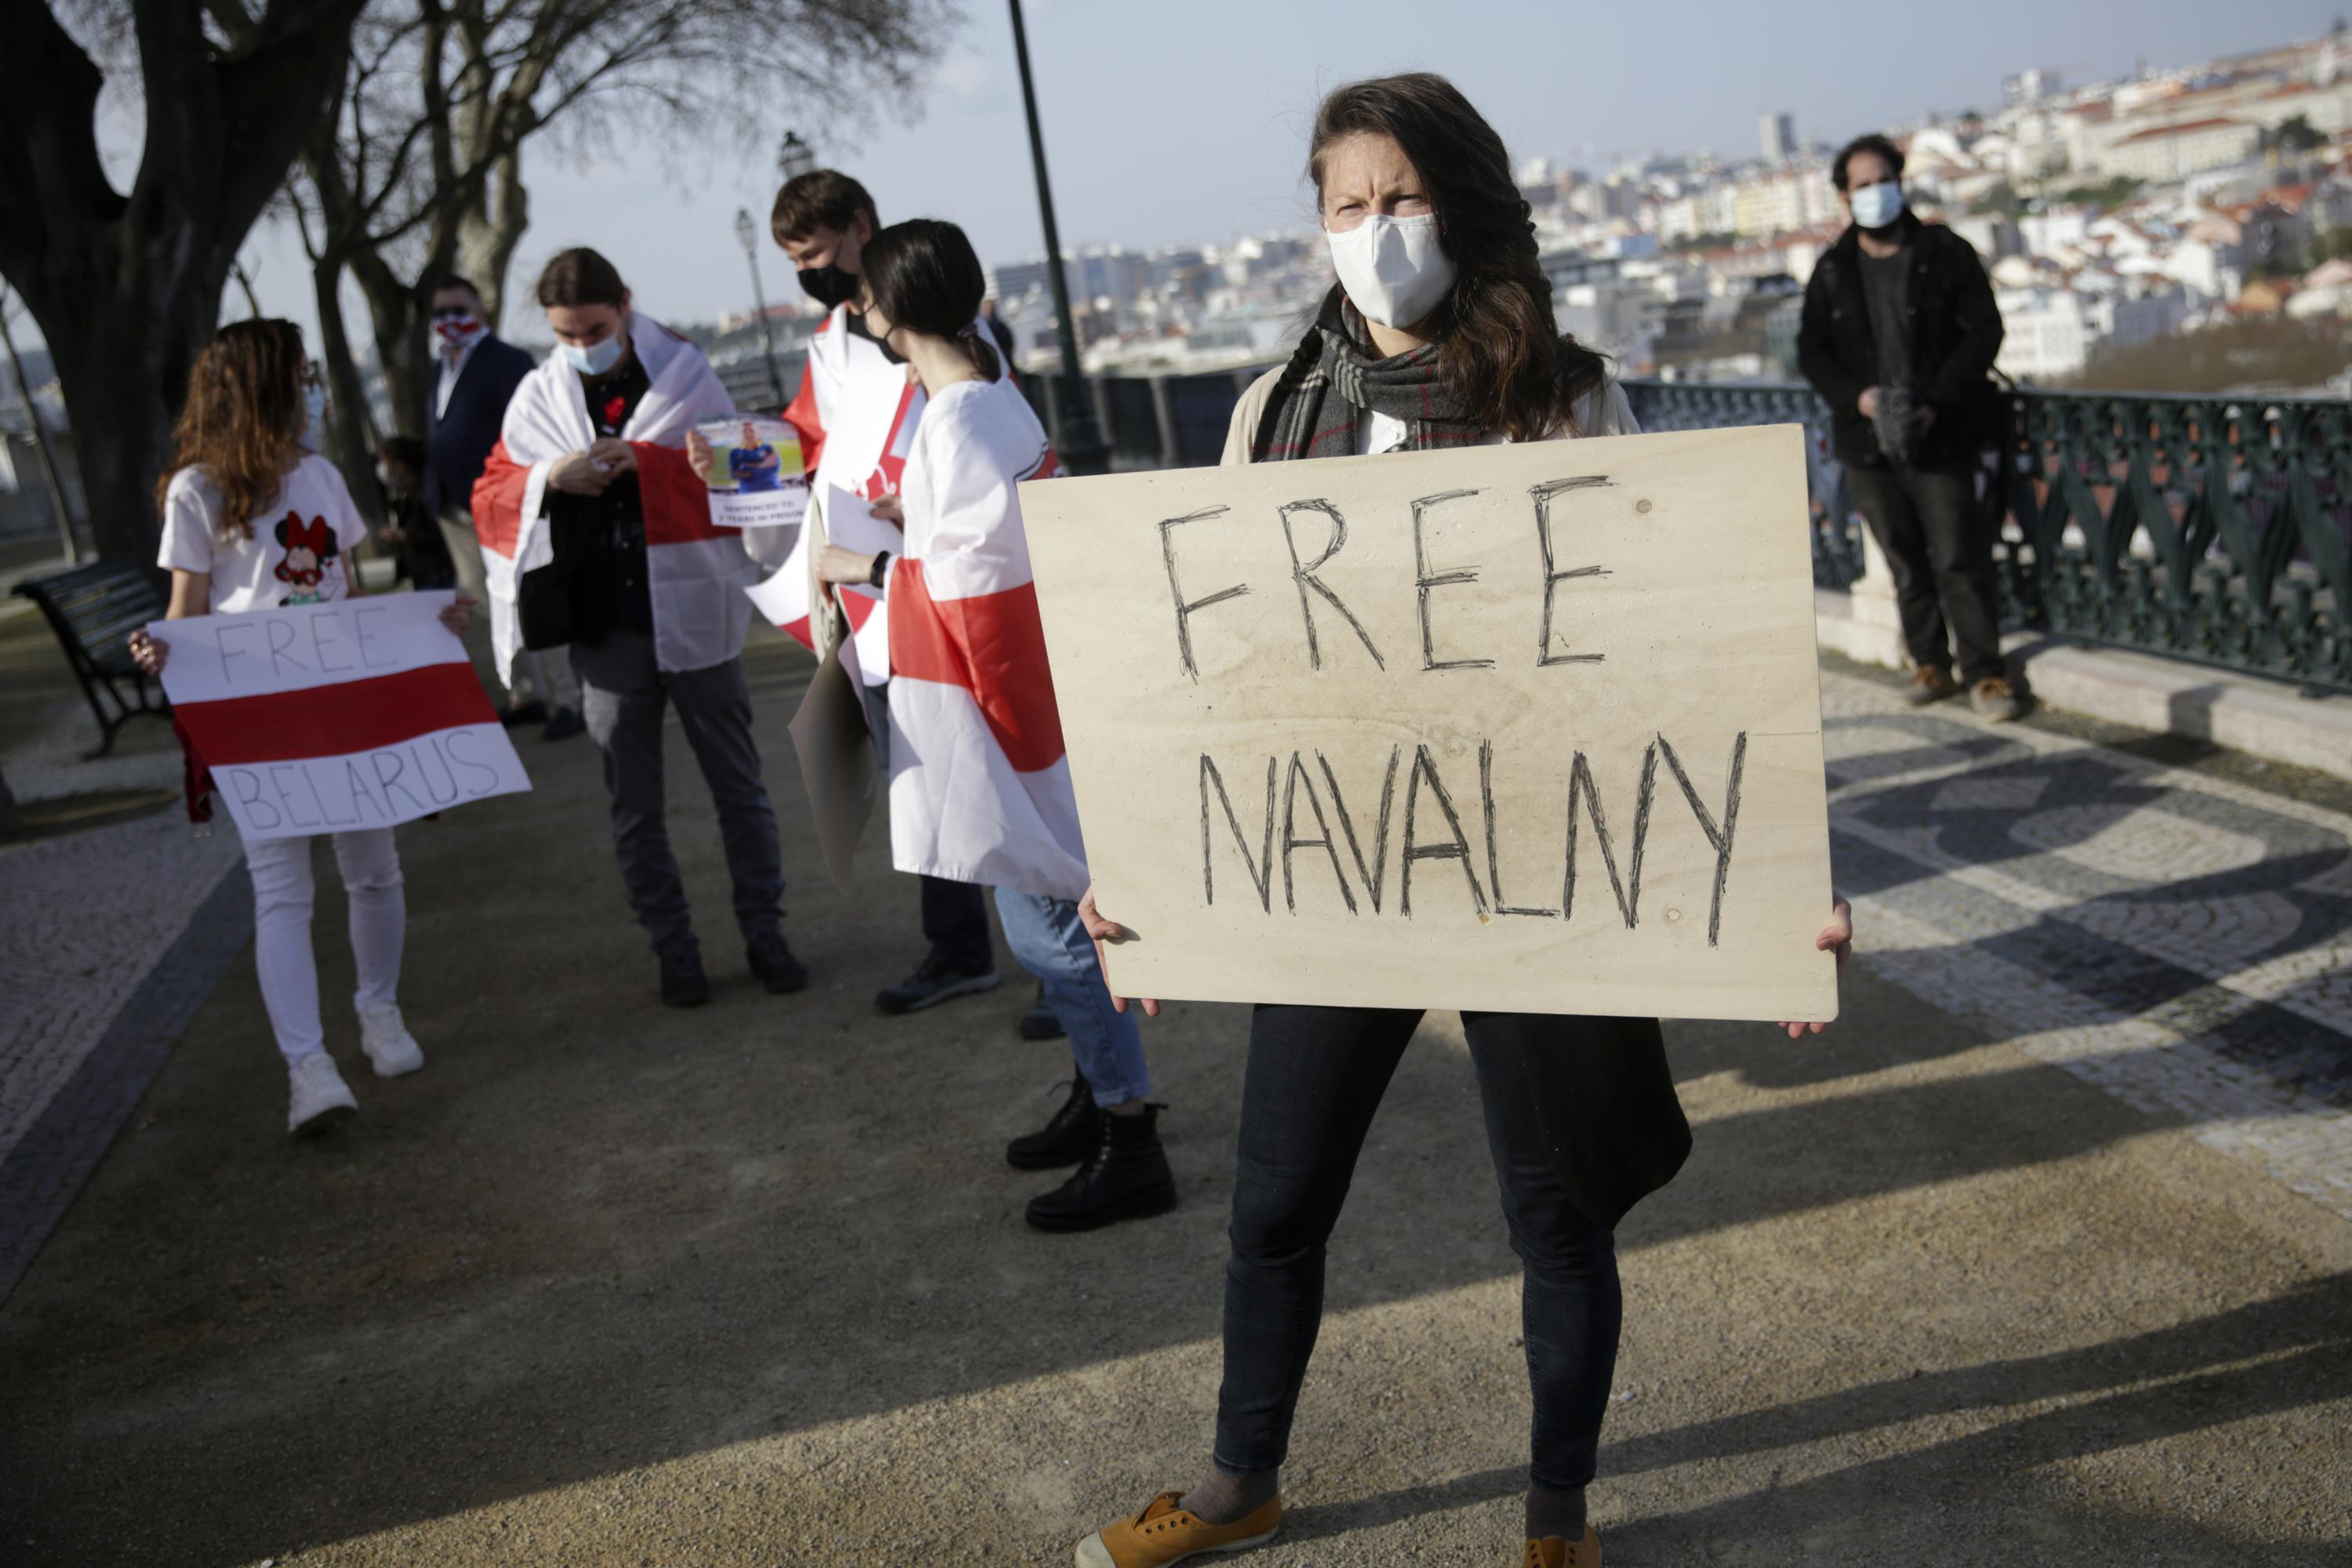 Portugal mayor: Protesters' details were given to embassies